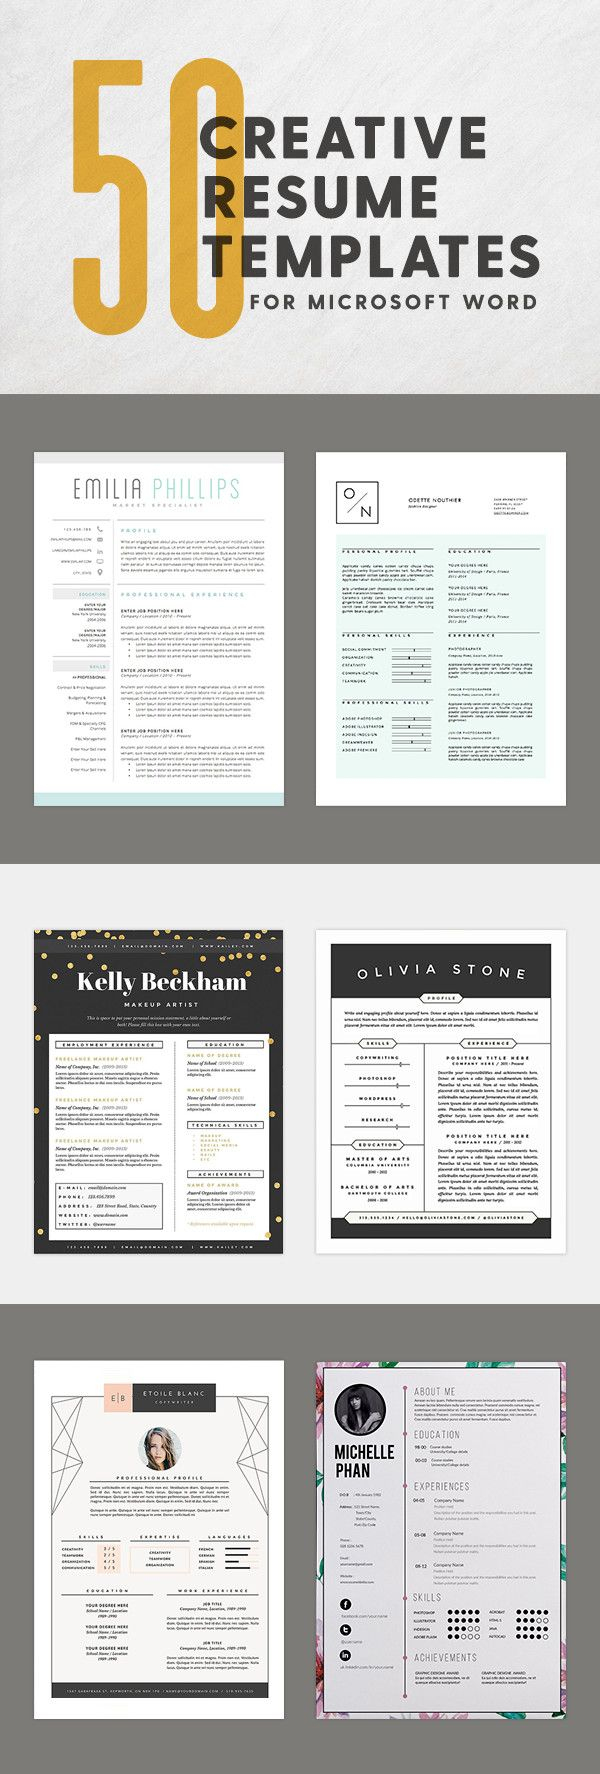 50 creative resume templates you wont believe are microsoft word. Resume Example. Resume CV Cover Letter